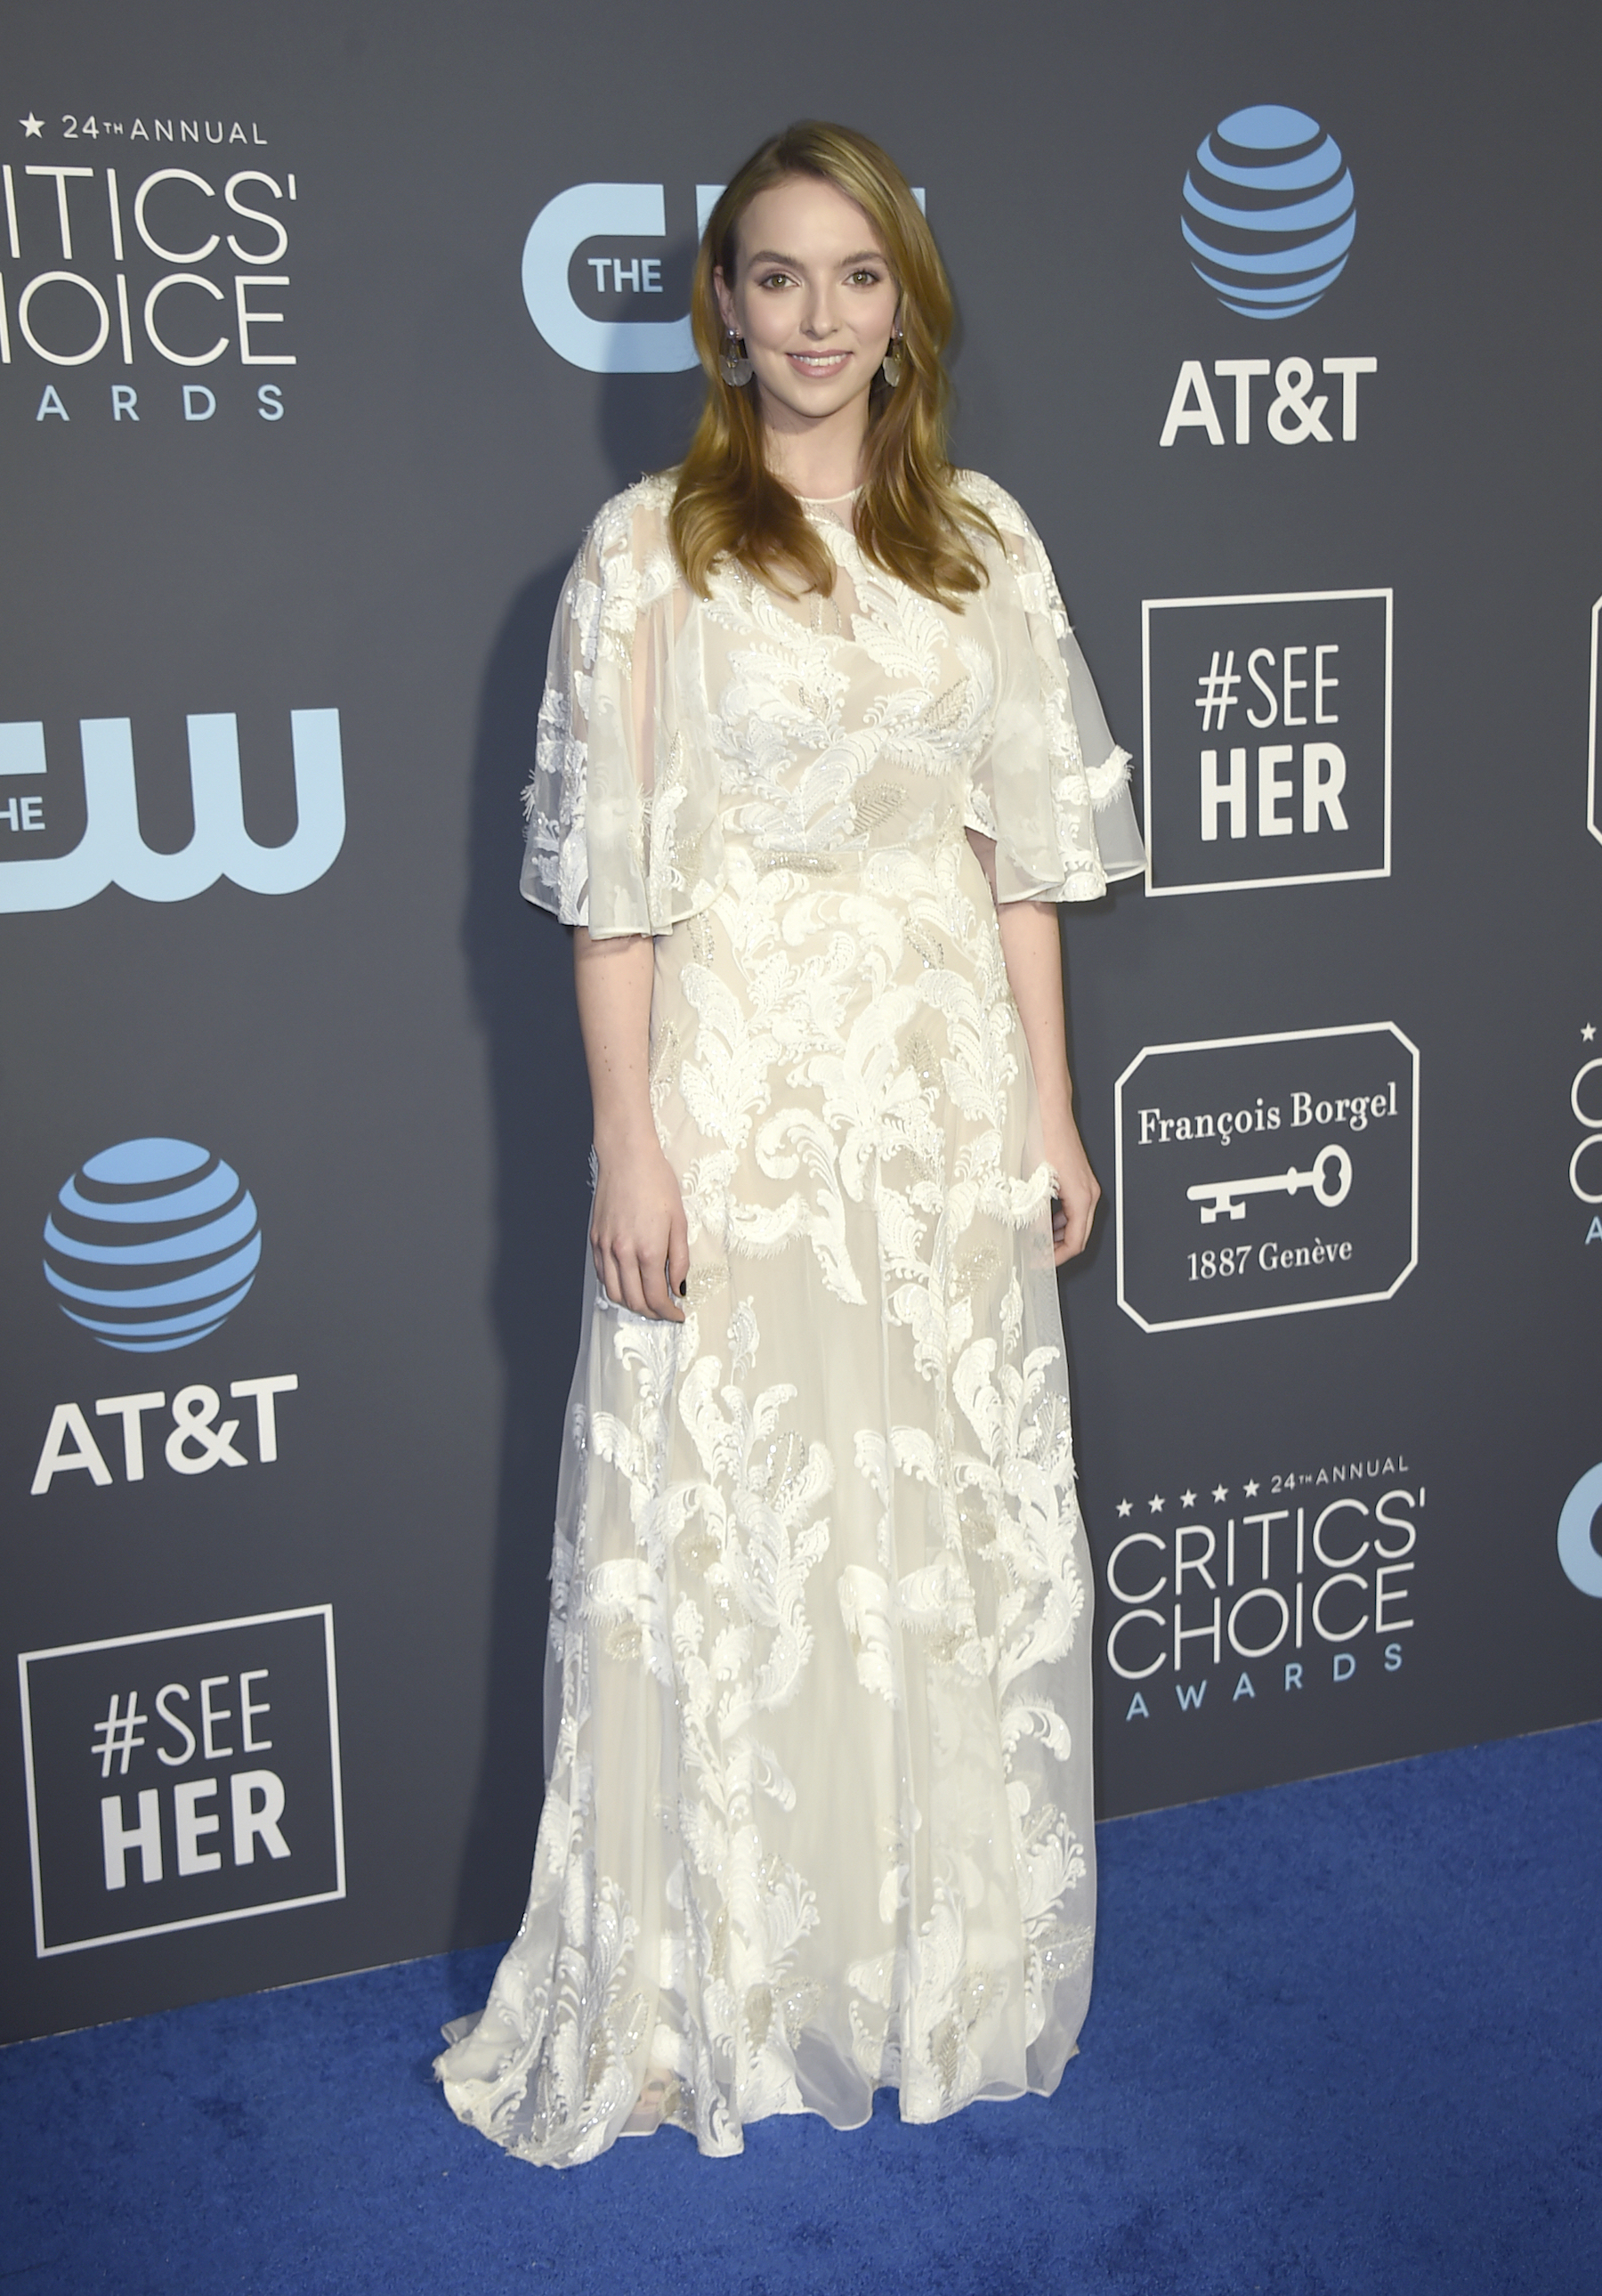 "<div class=""meta image-caption""><div class=""origin-logo origin-image ap""><span>AP</span></div><span class=""caption-text"">Jodie Comer arrives at the 24th annual Critics' Choice Awards on Sunday, Jan. 13, 2019, at the Barker Hangar in Santa Monica, Calif. (Jordan Strauss/Invision/AP)</span></div>"